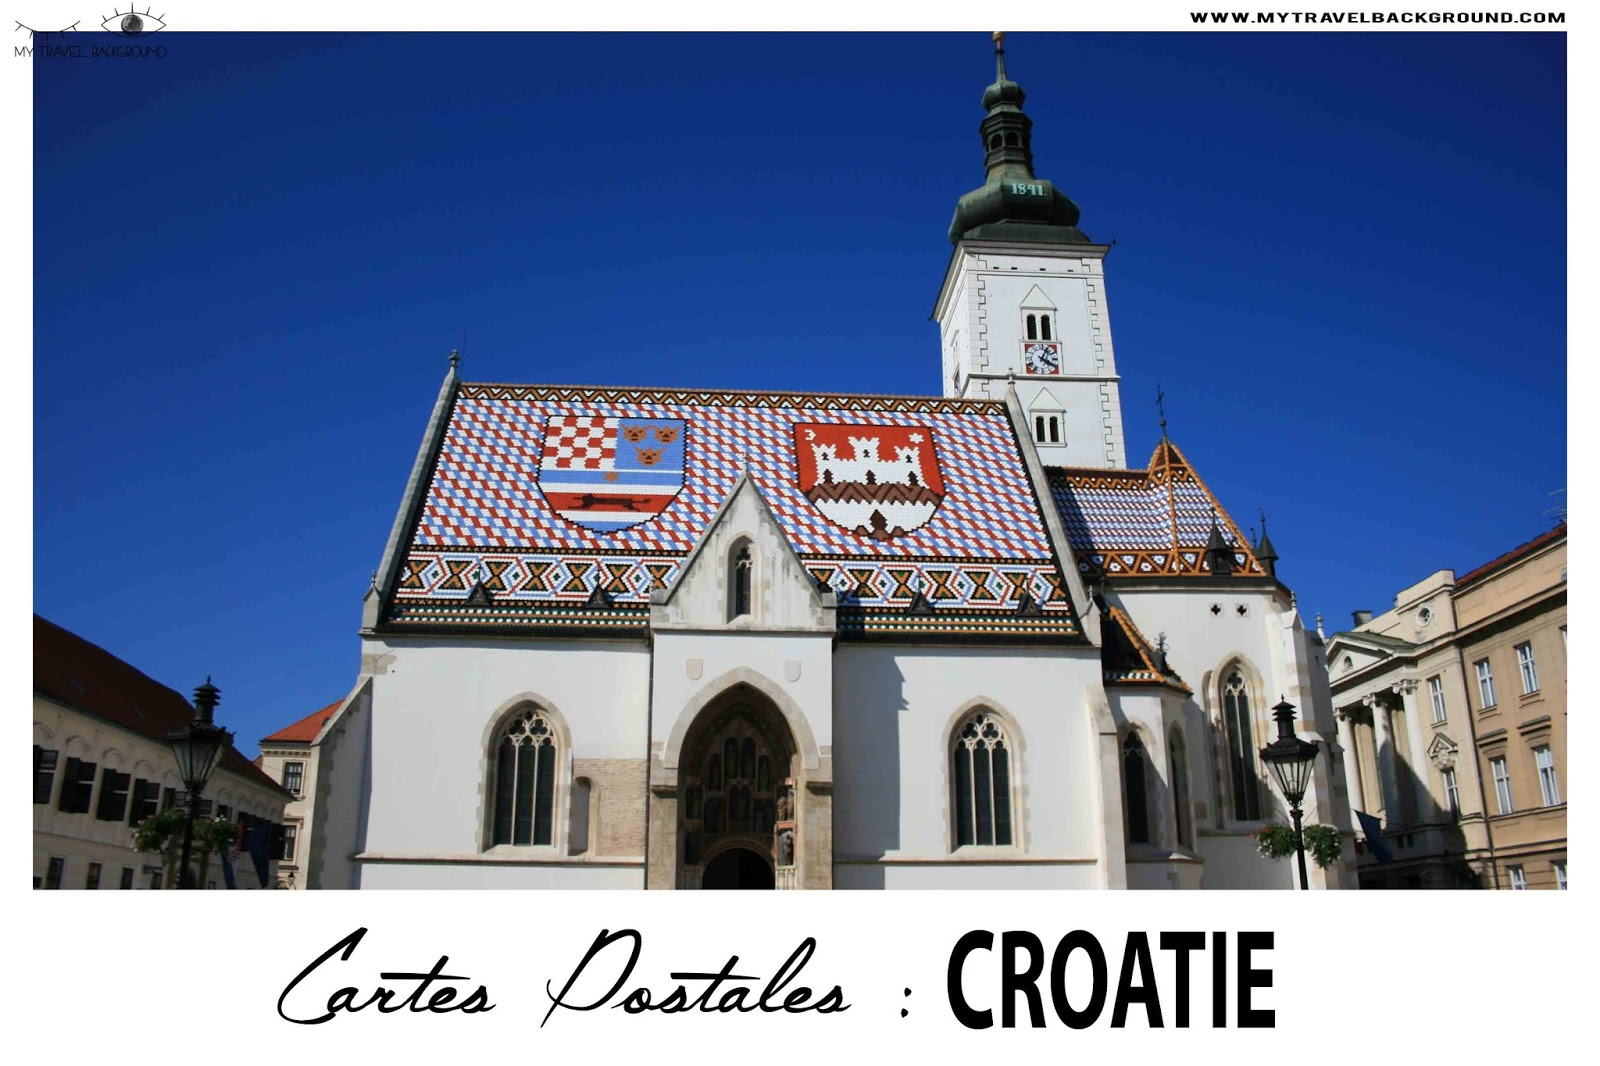 My Travel Background : cartes postales de Croatie